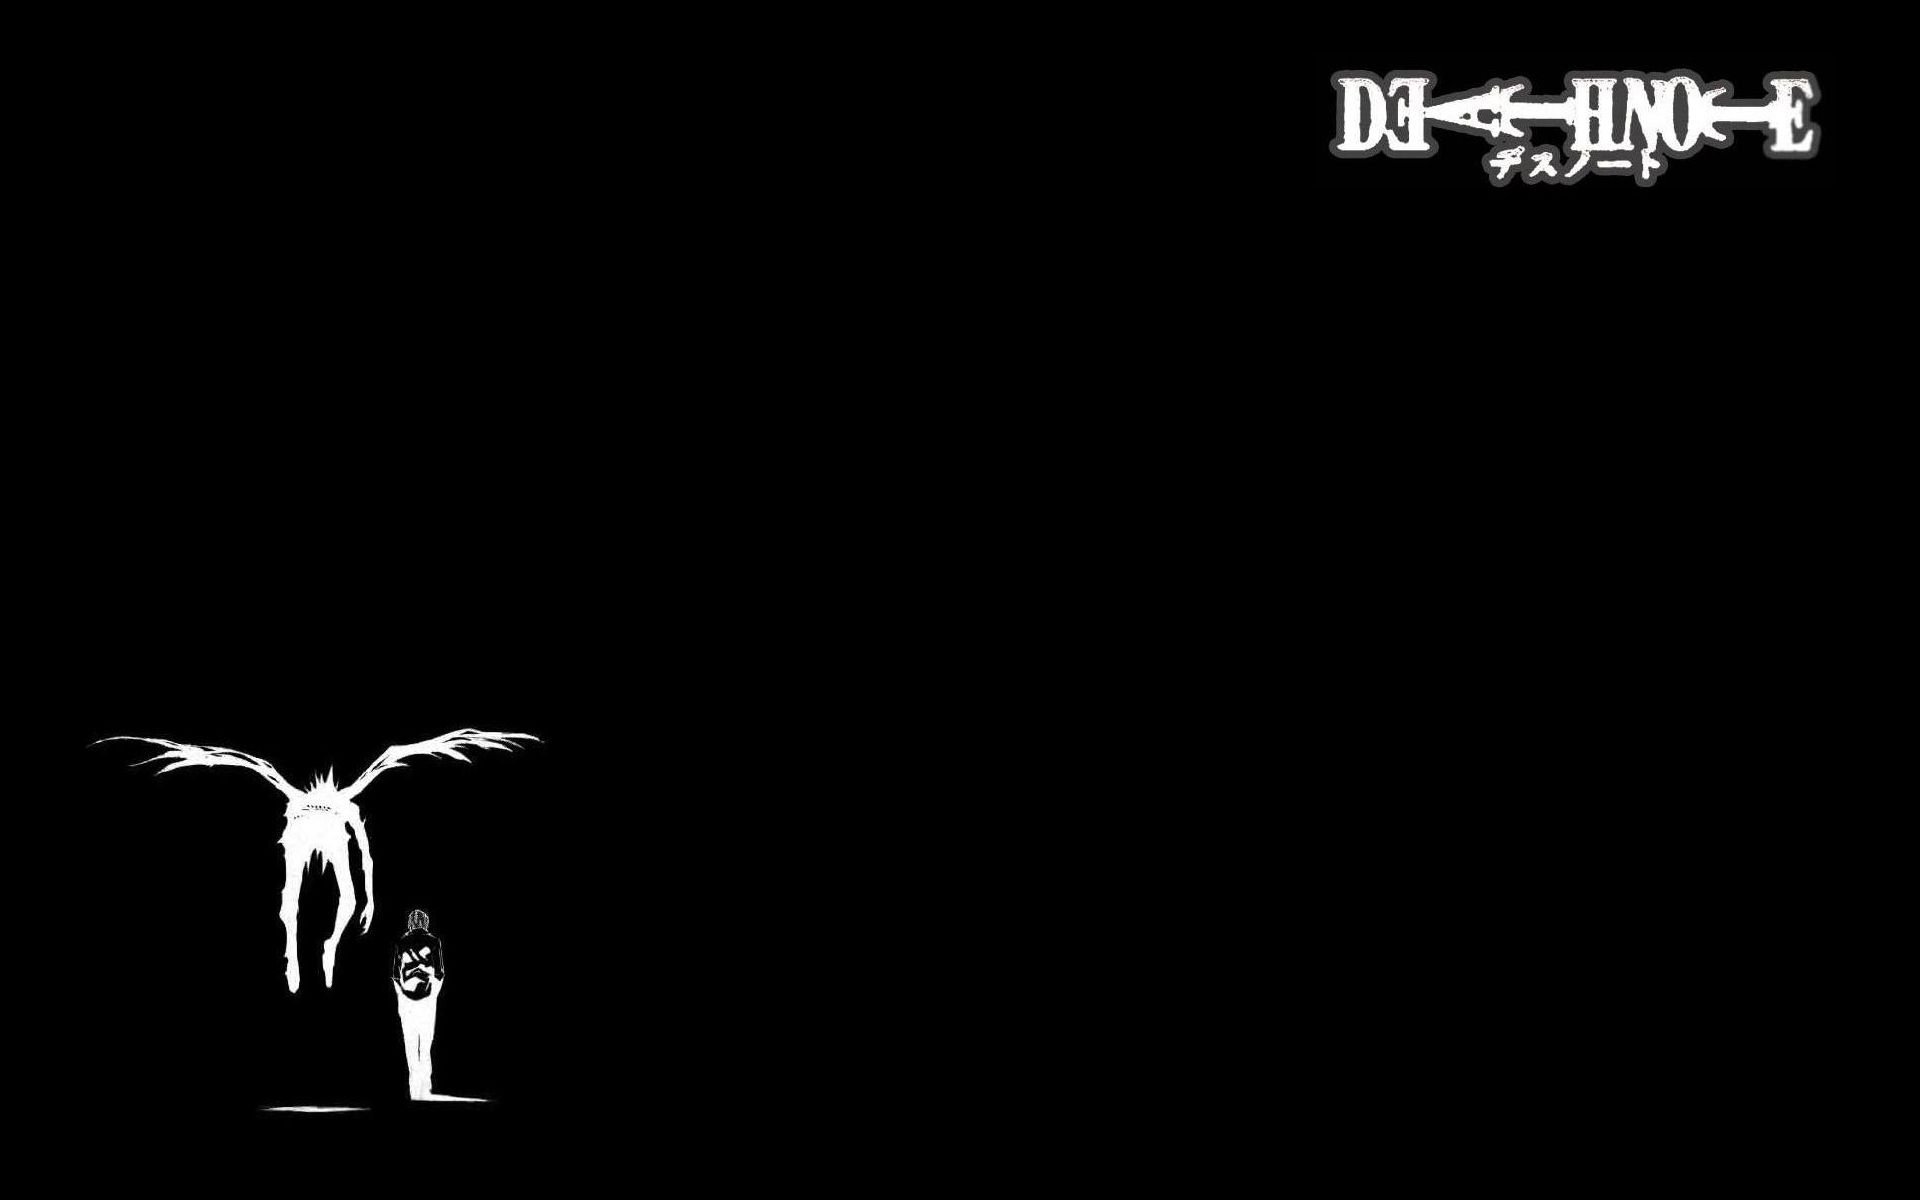 Minimalistic Death Note Anime Black and White Wallpaper